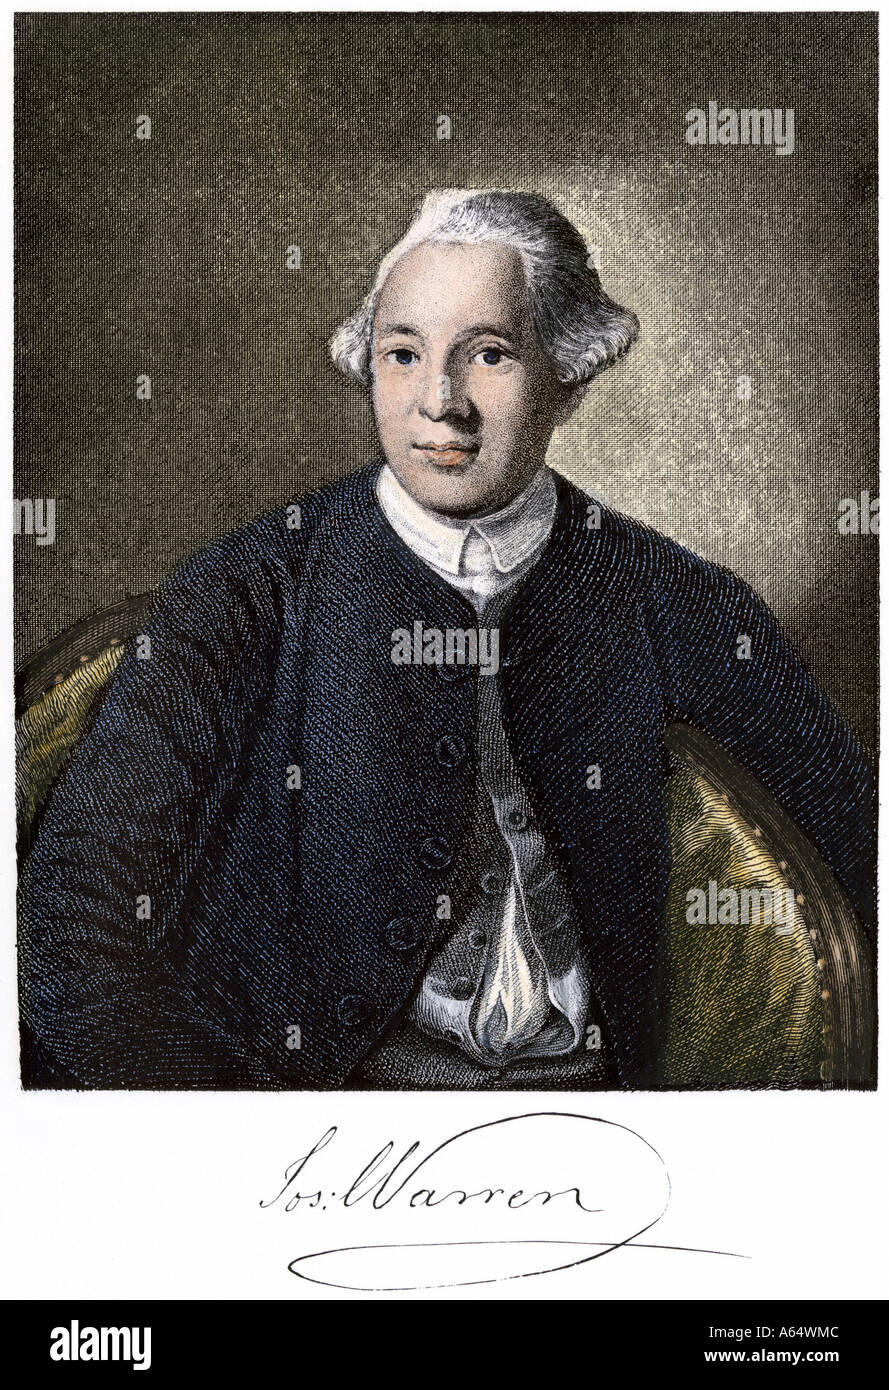 Dr Joseph Warren of Boston and his signature. Hand-colored woodcut - Stock Image